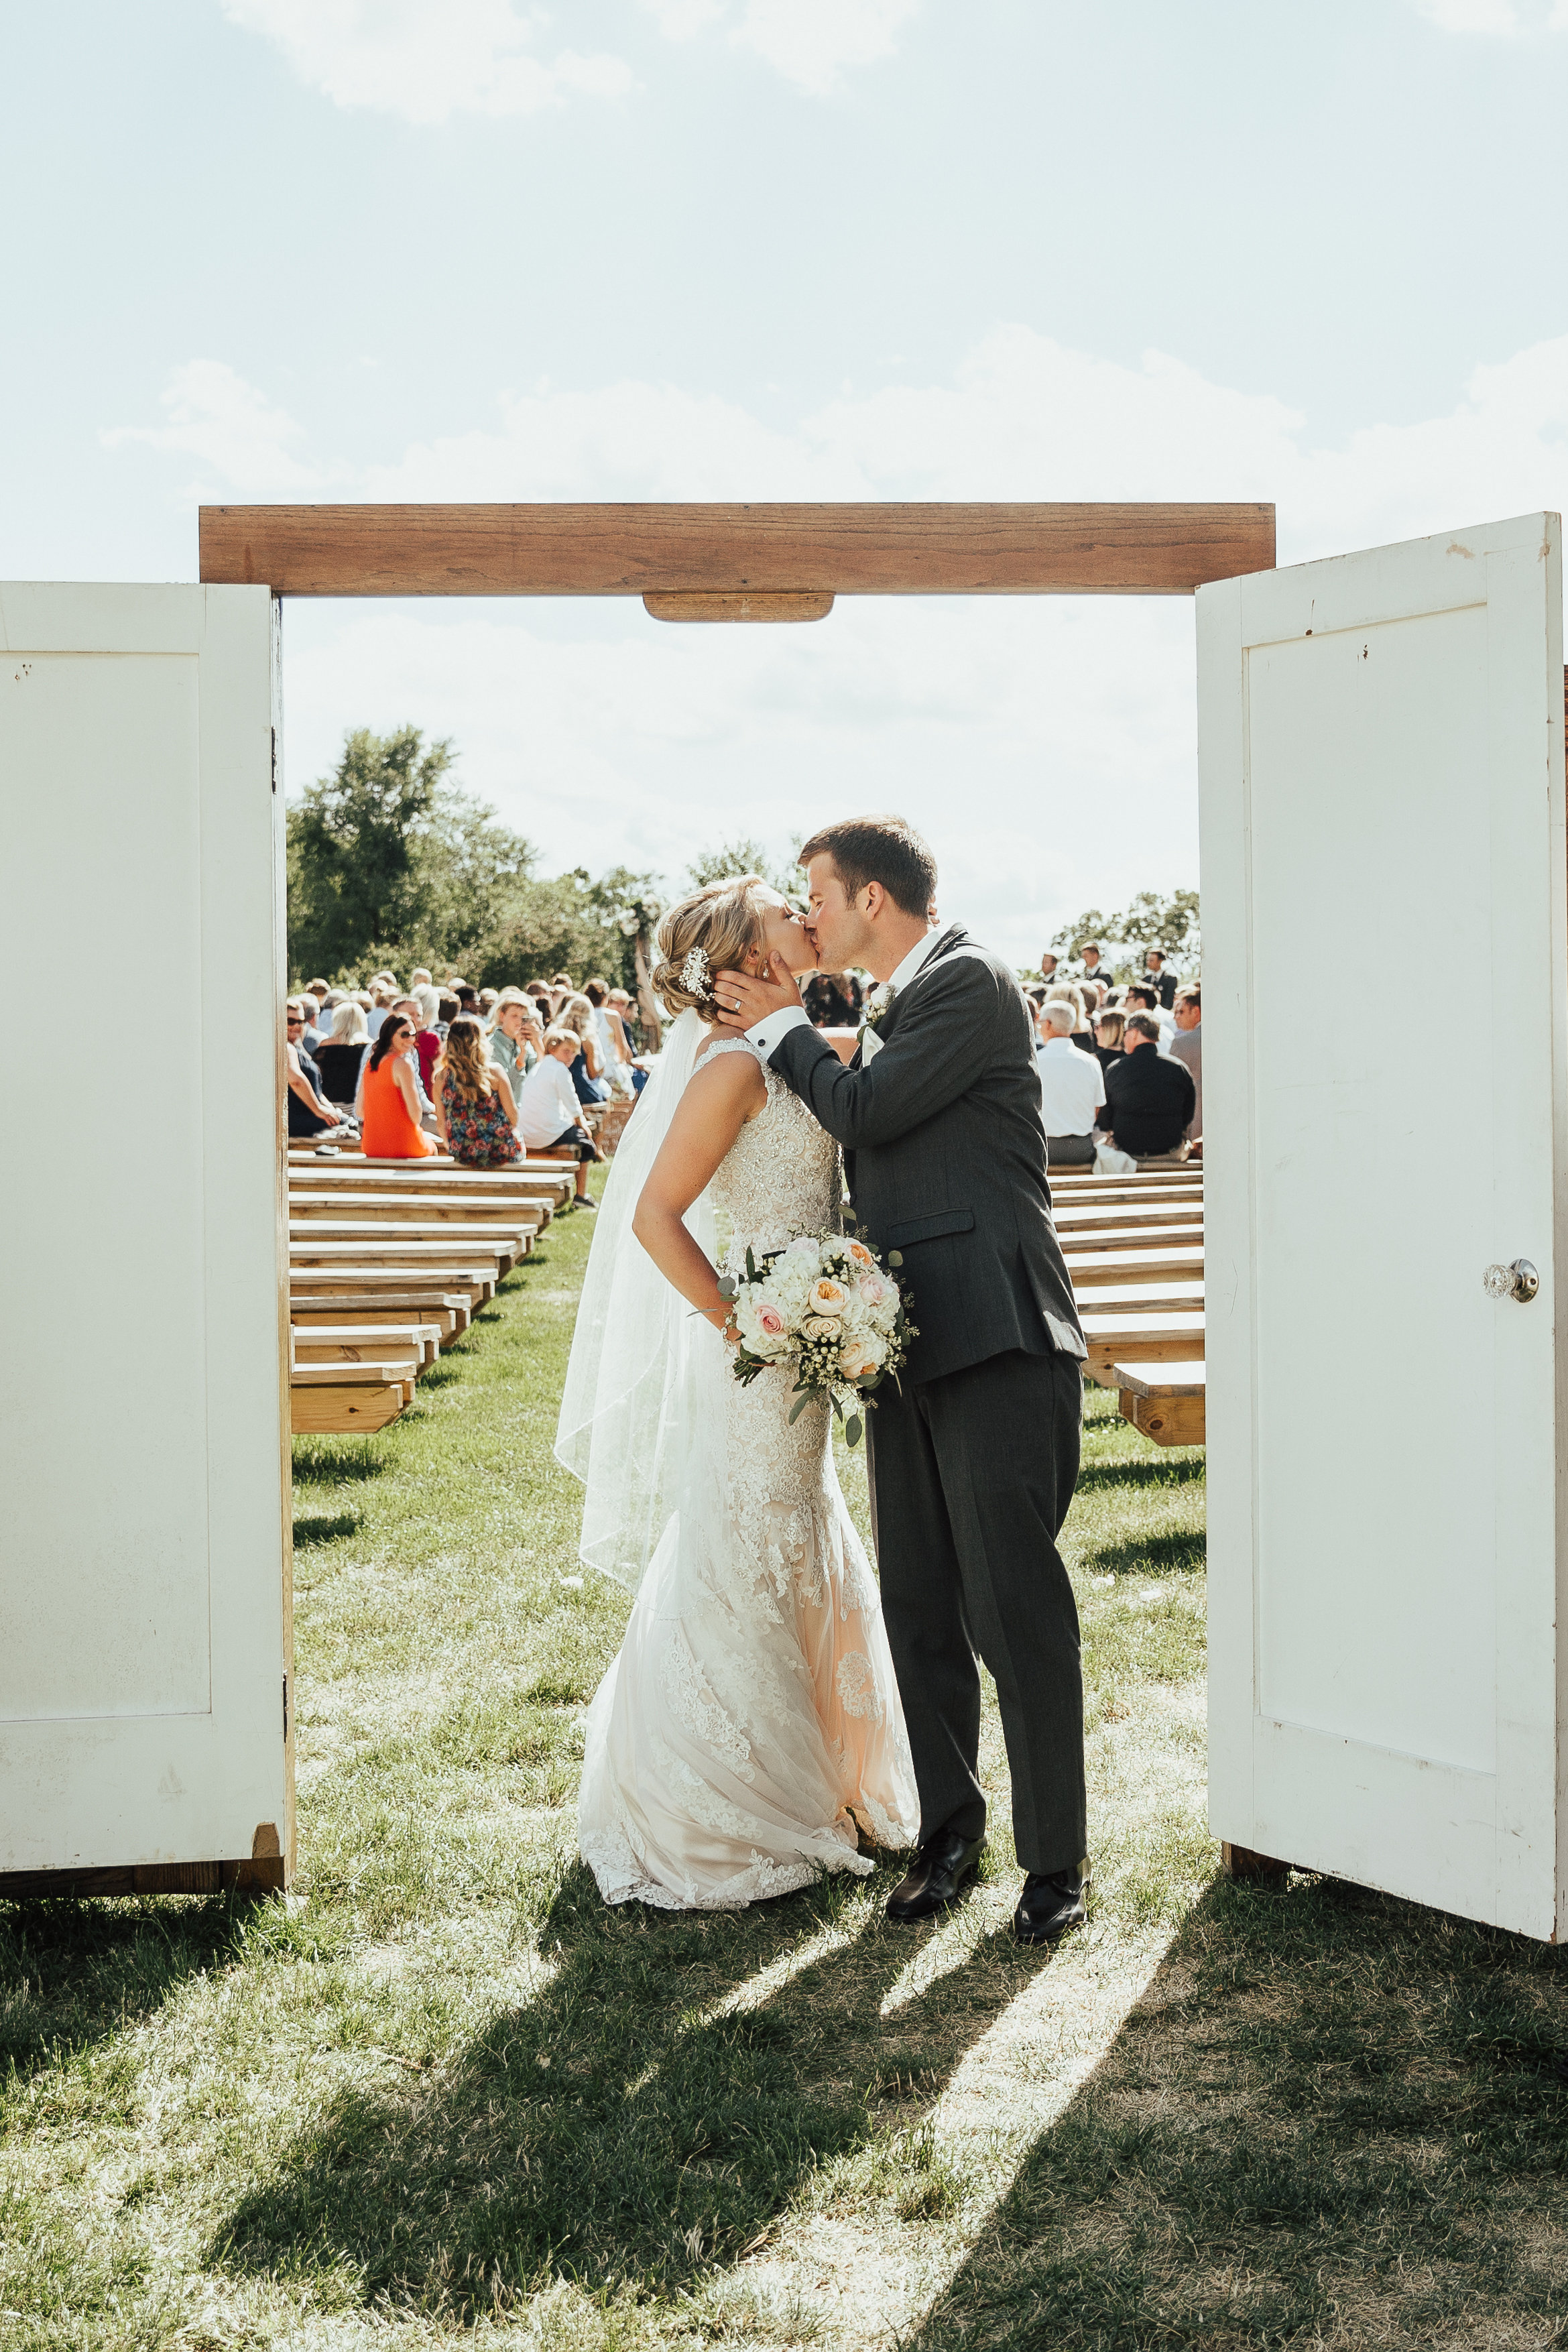 just married exit kiss in the white doors | Janelle Elise | Megan + Corey | Furber Farm | Sixpence Events | A Vintage Touch Weddings106.jpg